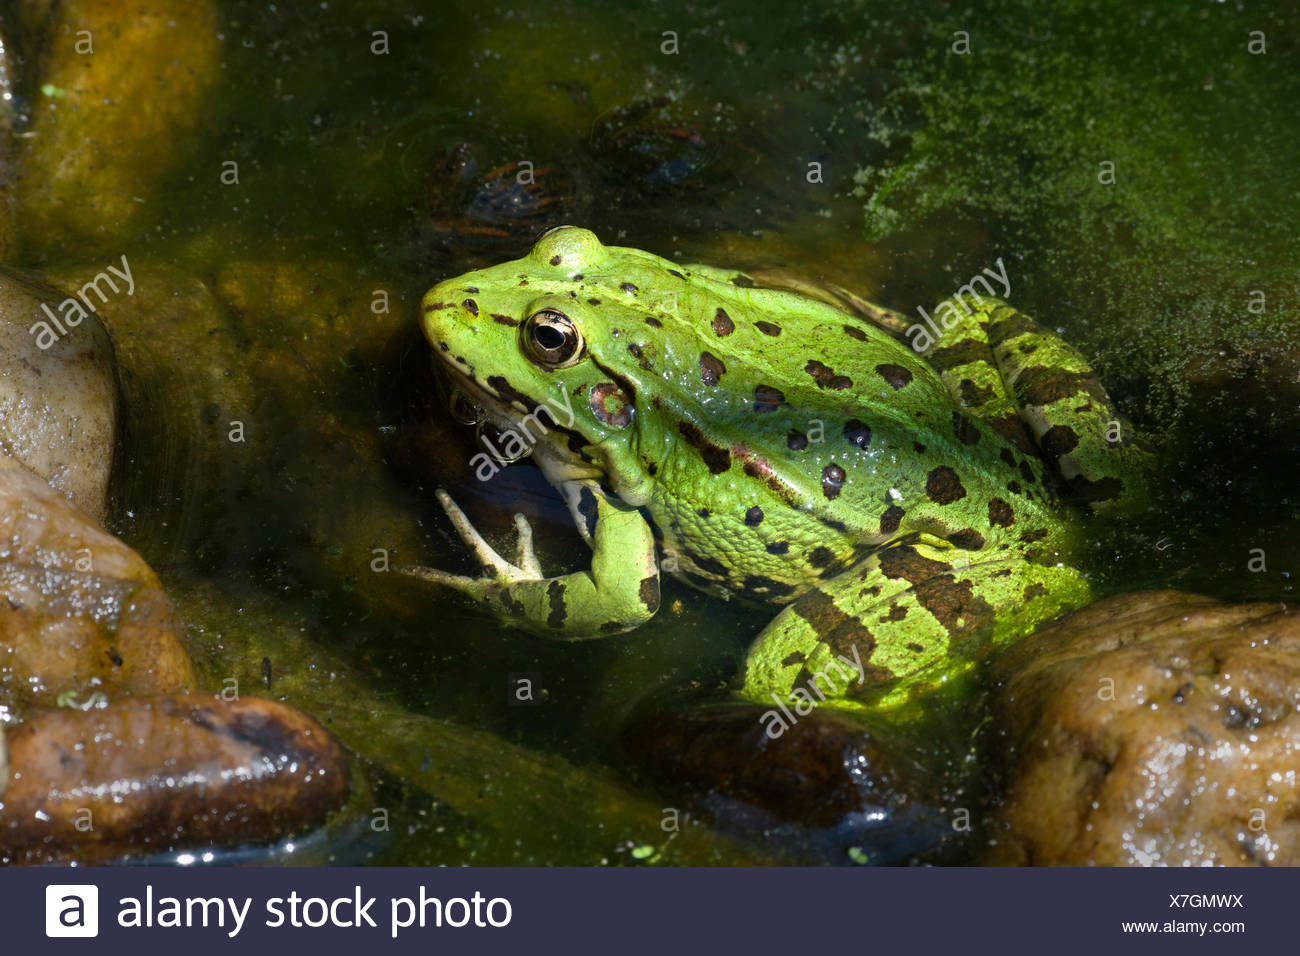 The edible frog (Rana esculenta), water, Burgenland, Austria - Stock Image